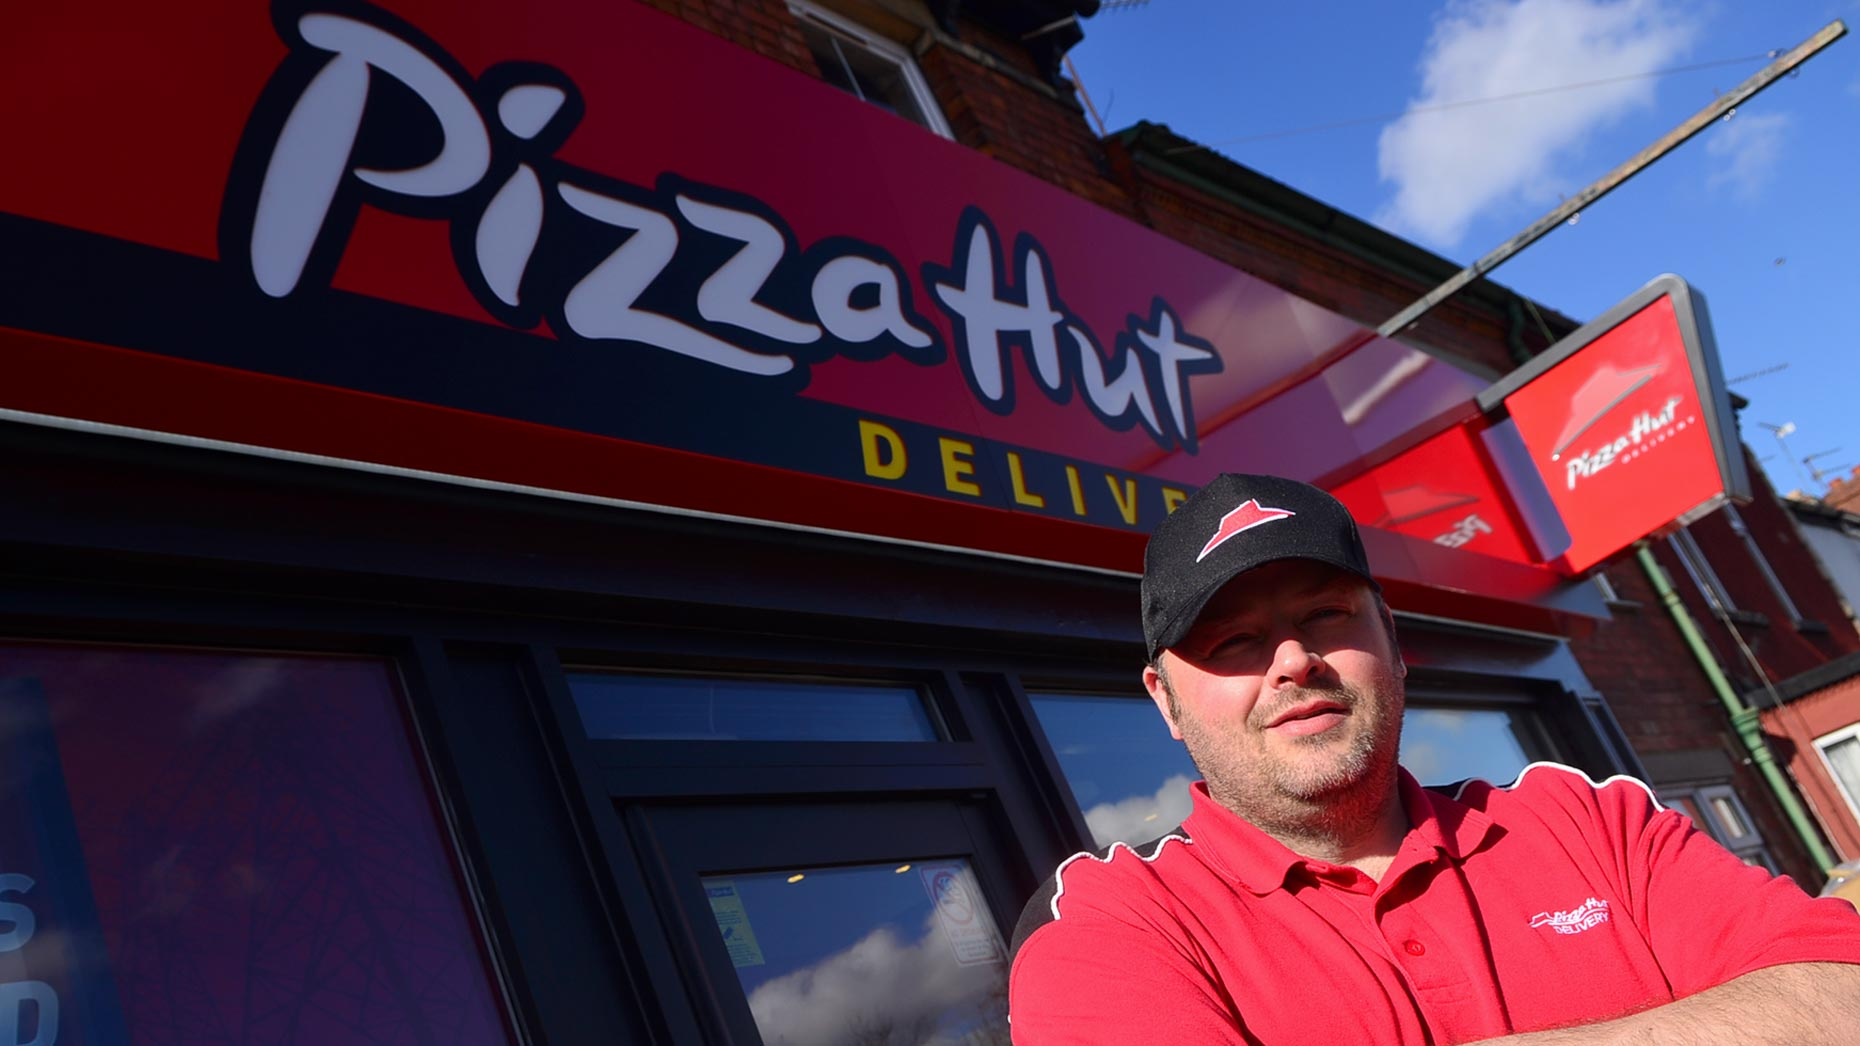 pizza hut delivery service opens in lincoln